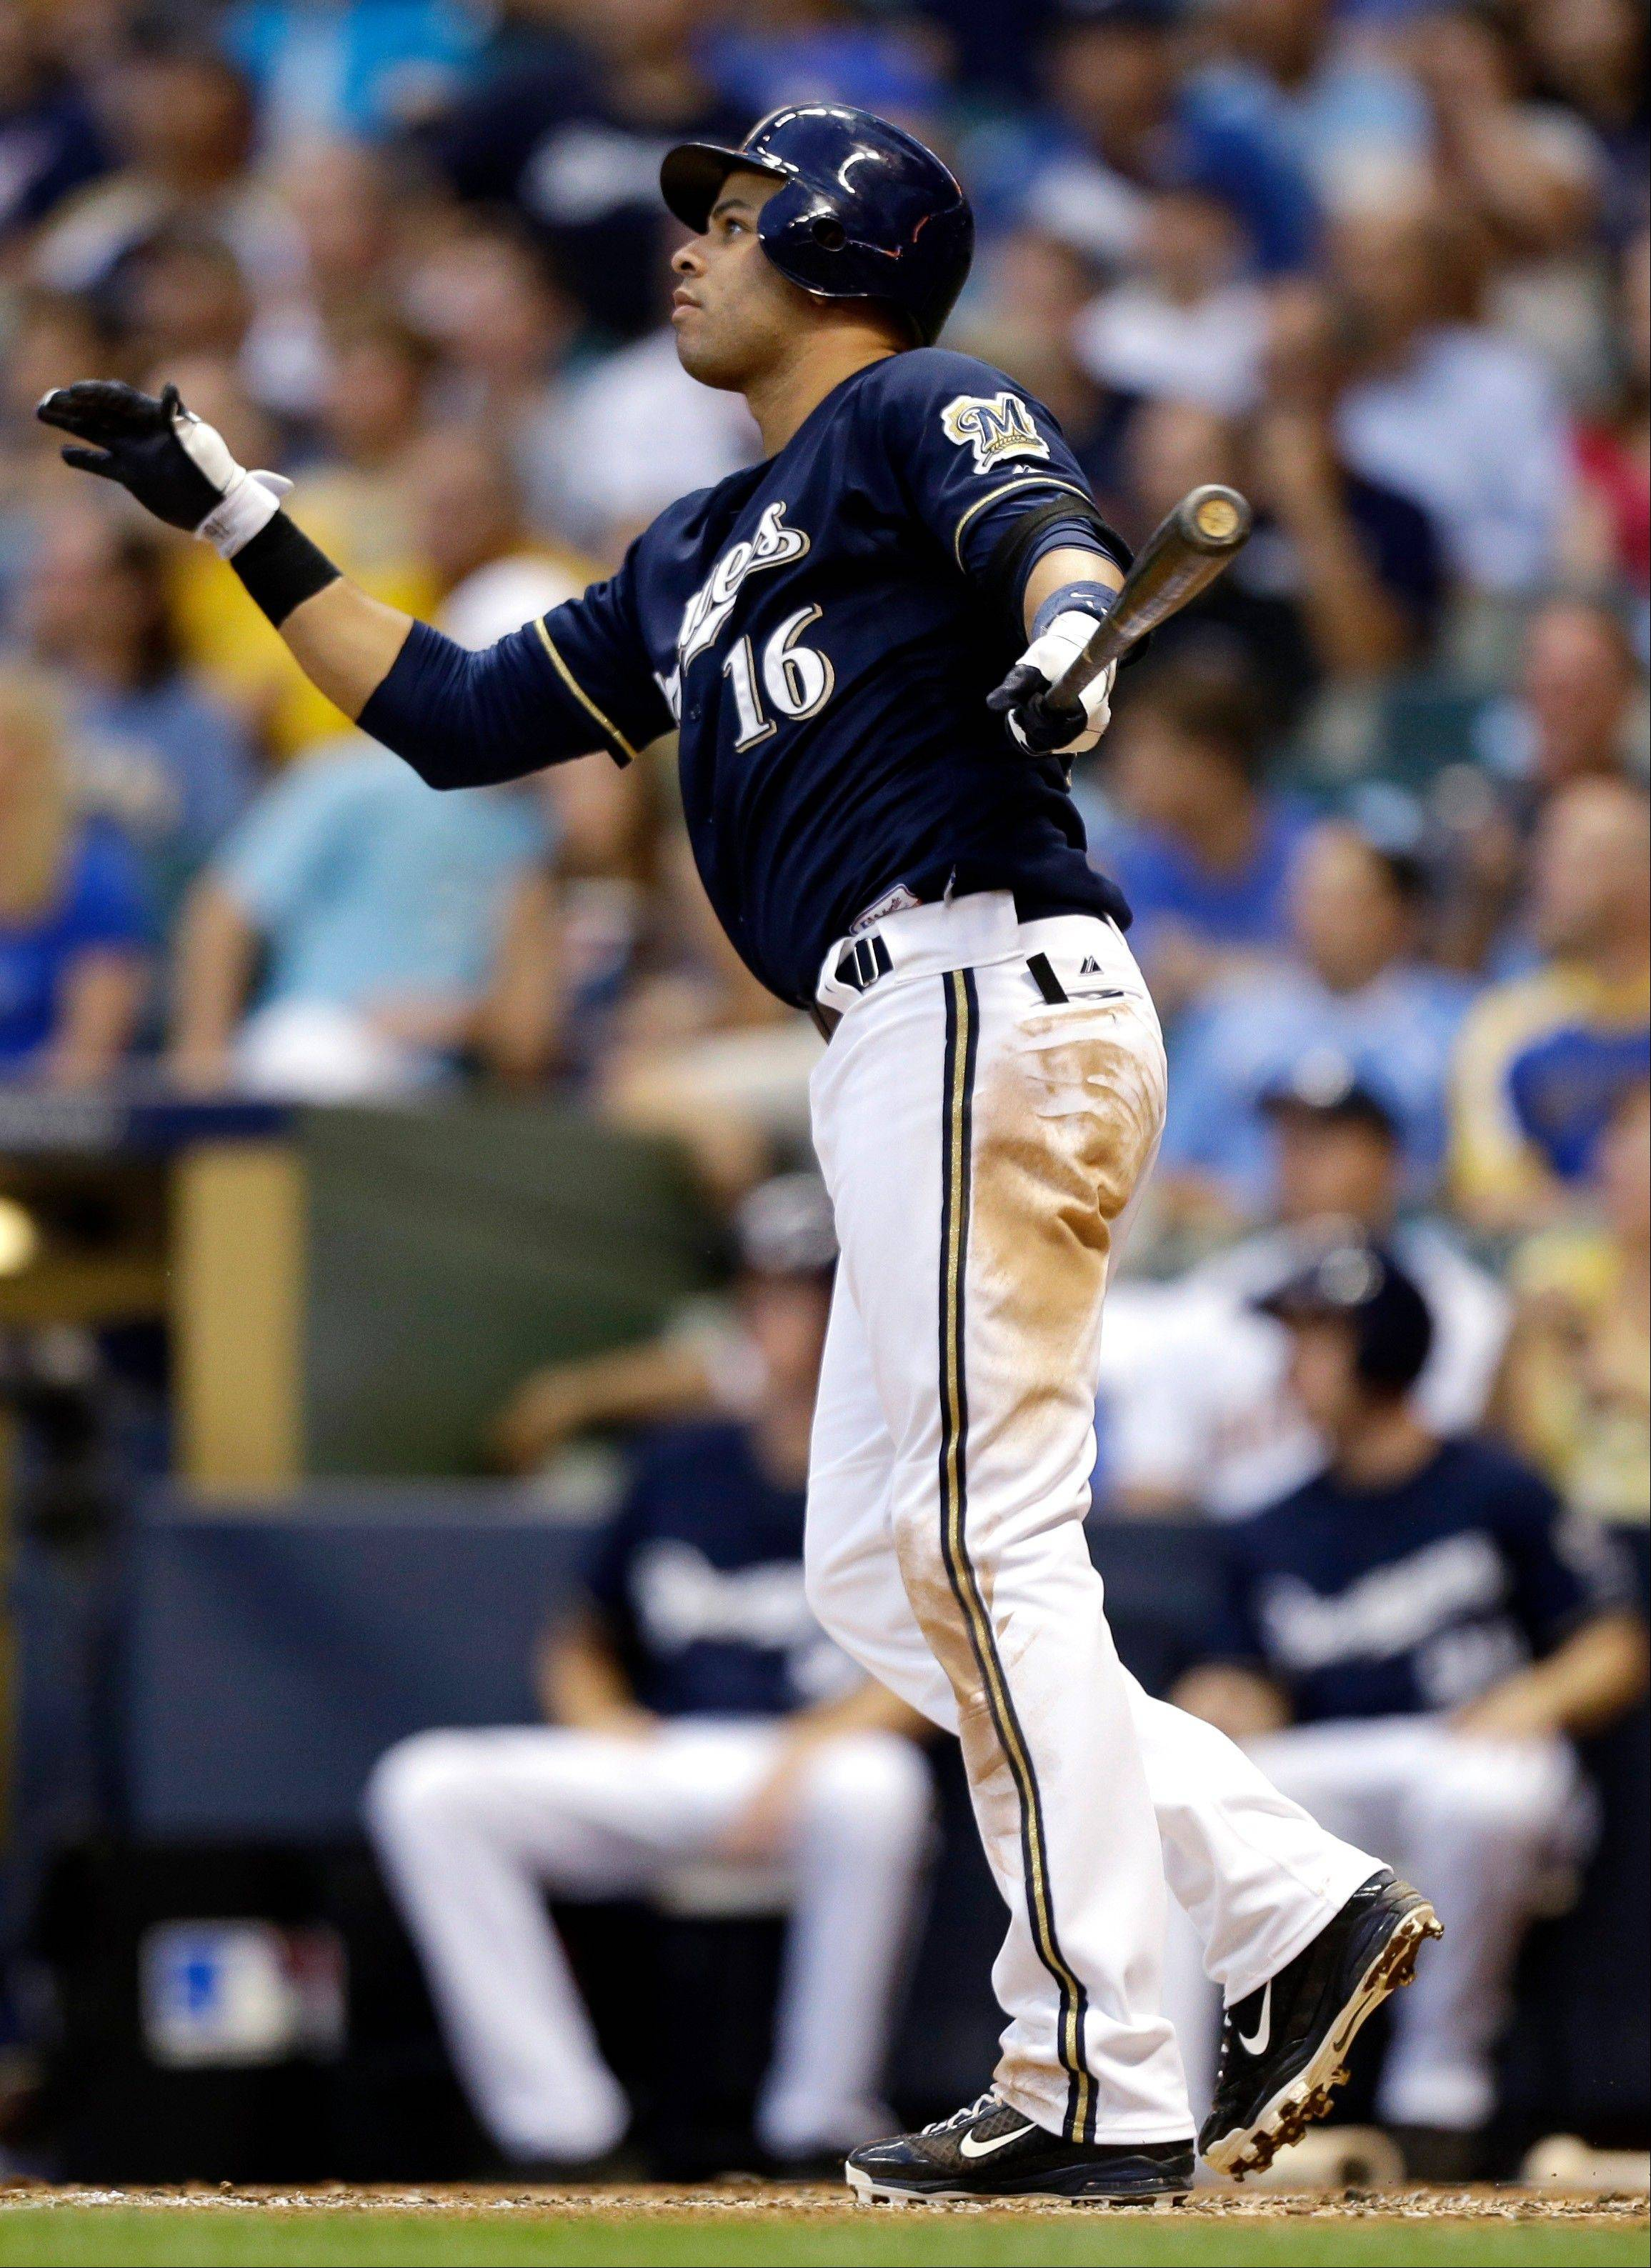 The Brewers' Aramis Ramirez watches his three-run home run leave the park against the Houston Astros during the third inning Tuesday in Milwaukee.